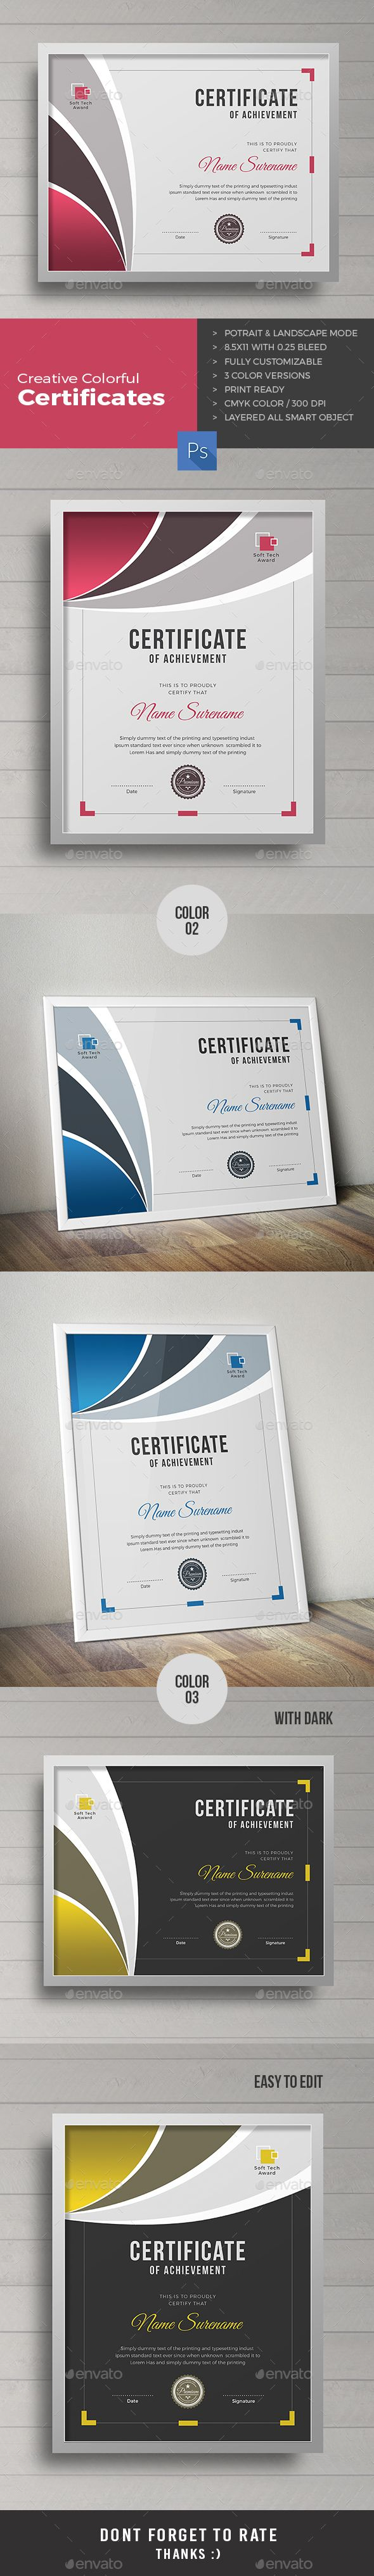 #Certificate.Download here: http://graphicriver.net/item/certificate/15504270?ref=arroganttype